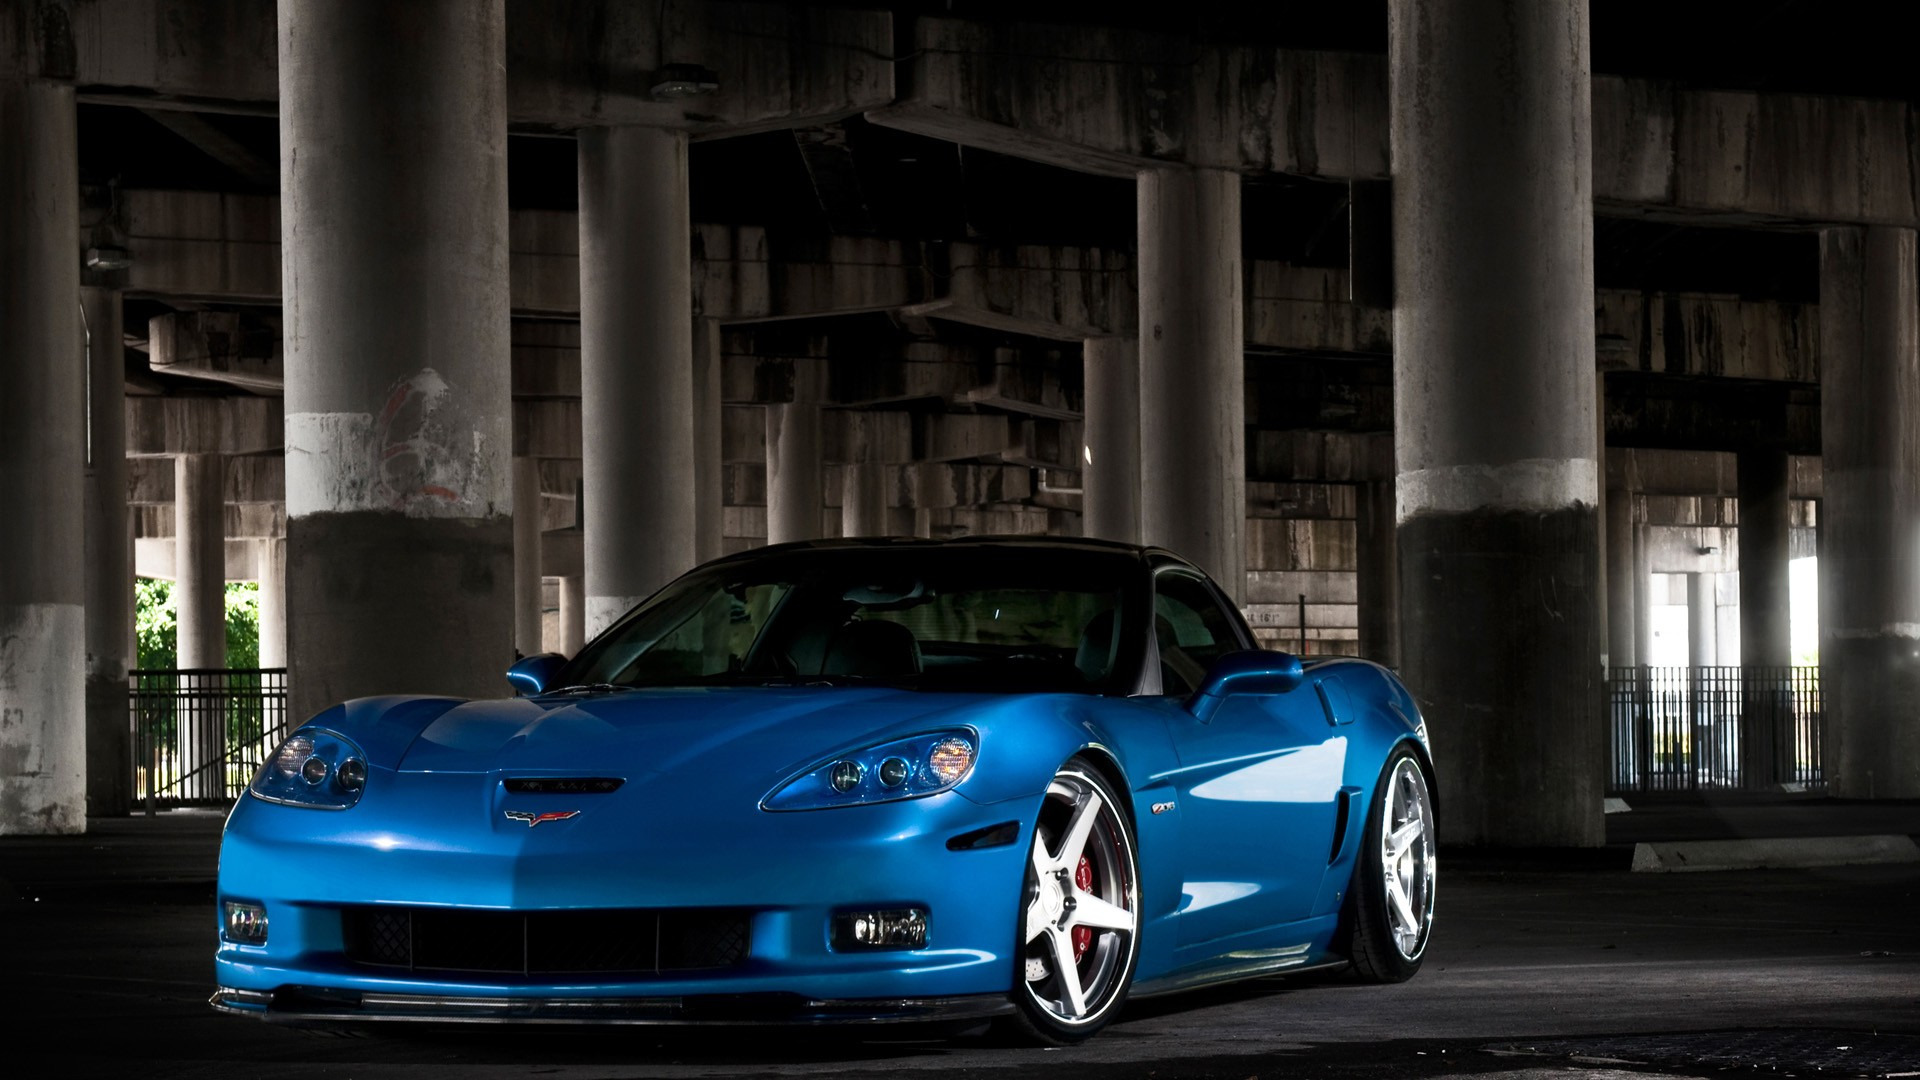 Latest Wallpapers Of Nature In 3d Chevrolet Corvette C6 Zr1 Car Wallpapers Hd Wallpapers